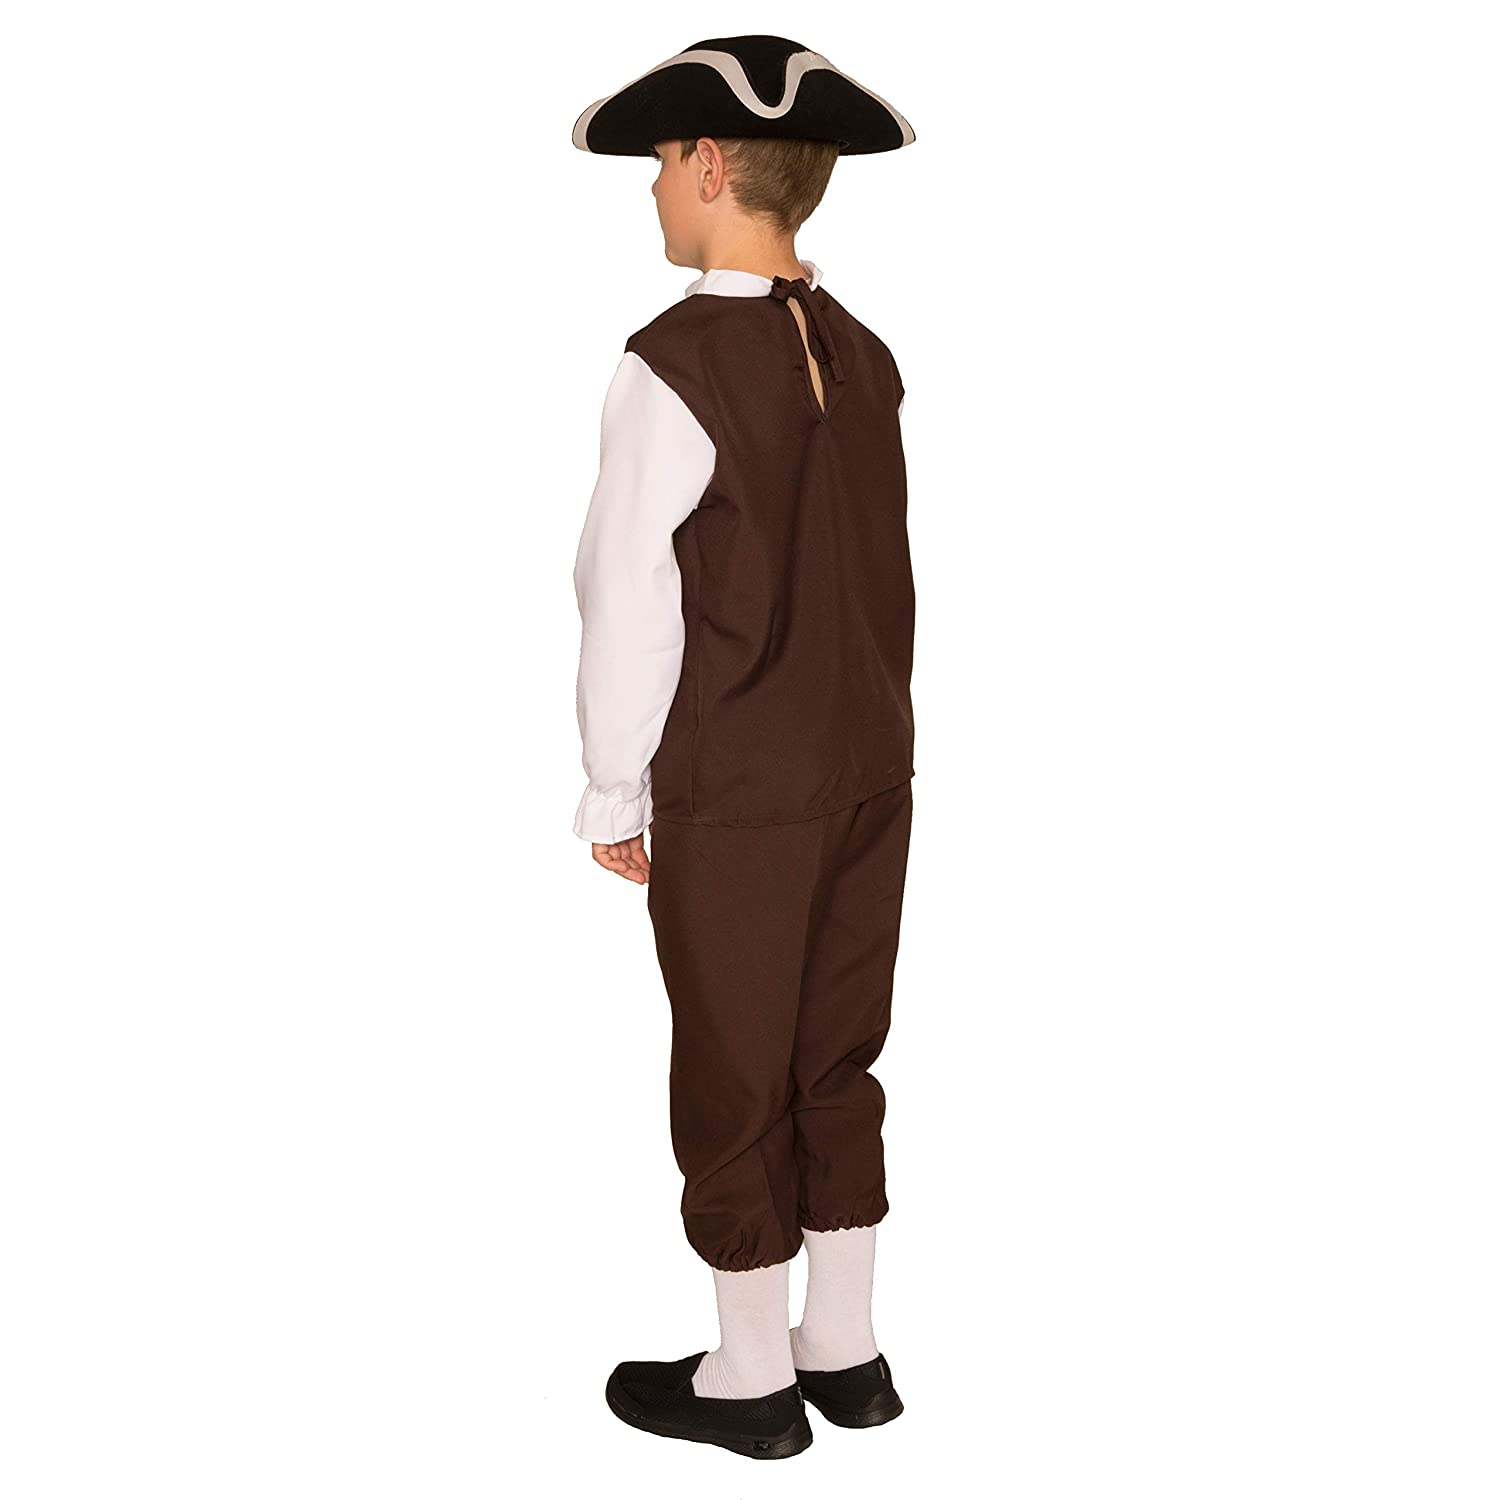 Arology Colonial Boy Child Size Costume Fabric for Comfortable Fit Including Shirt with Collar and Pants